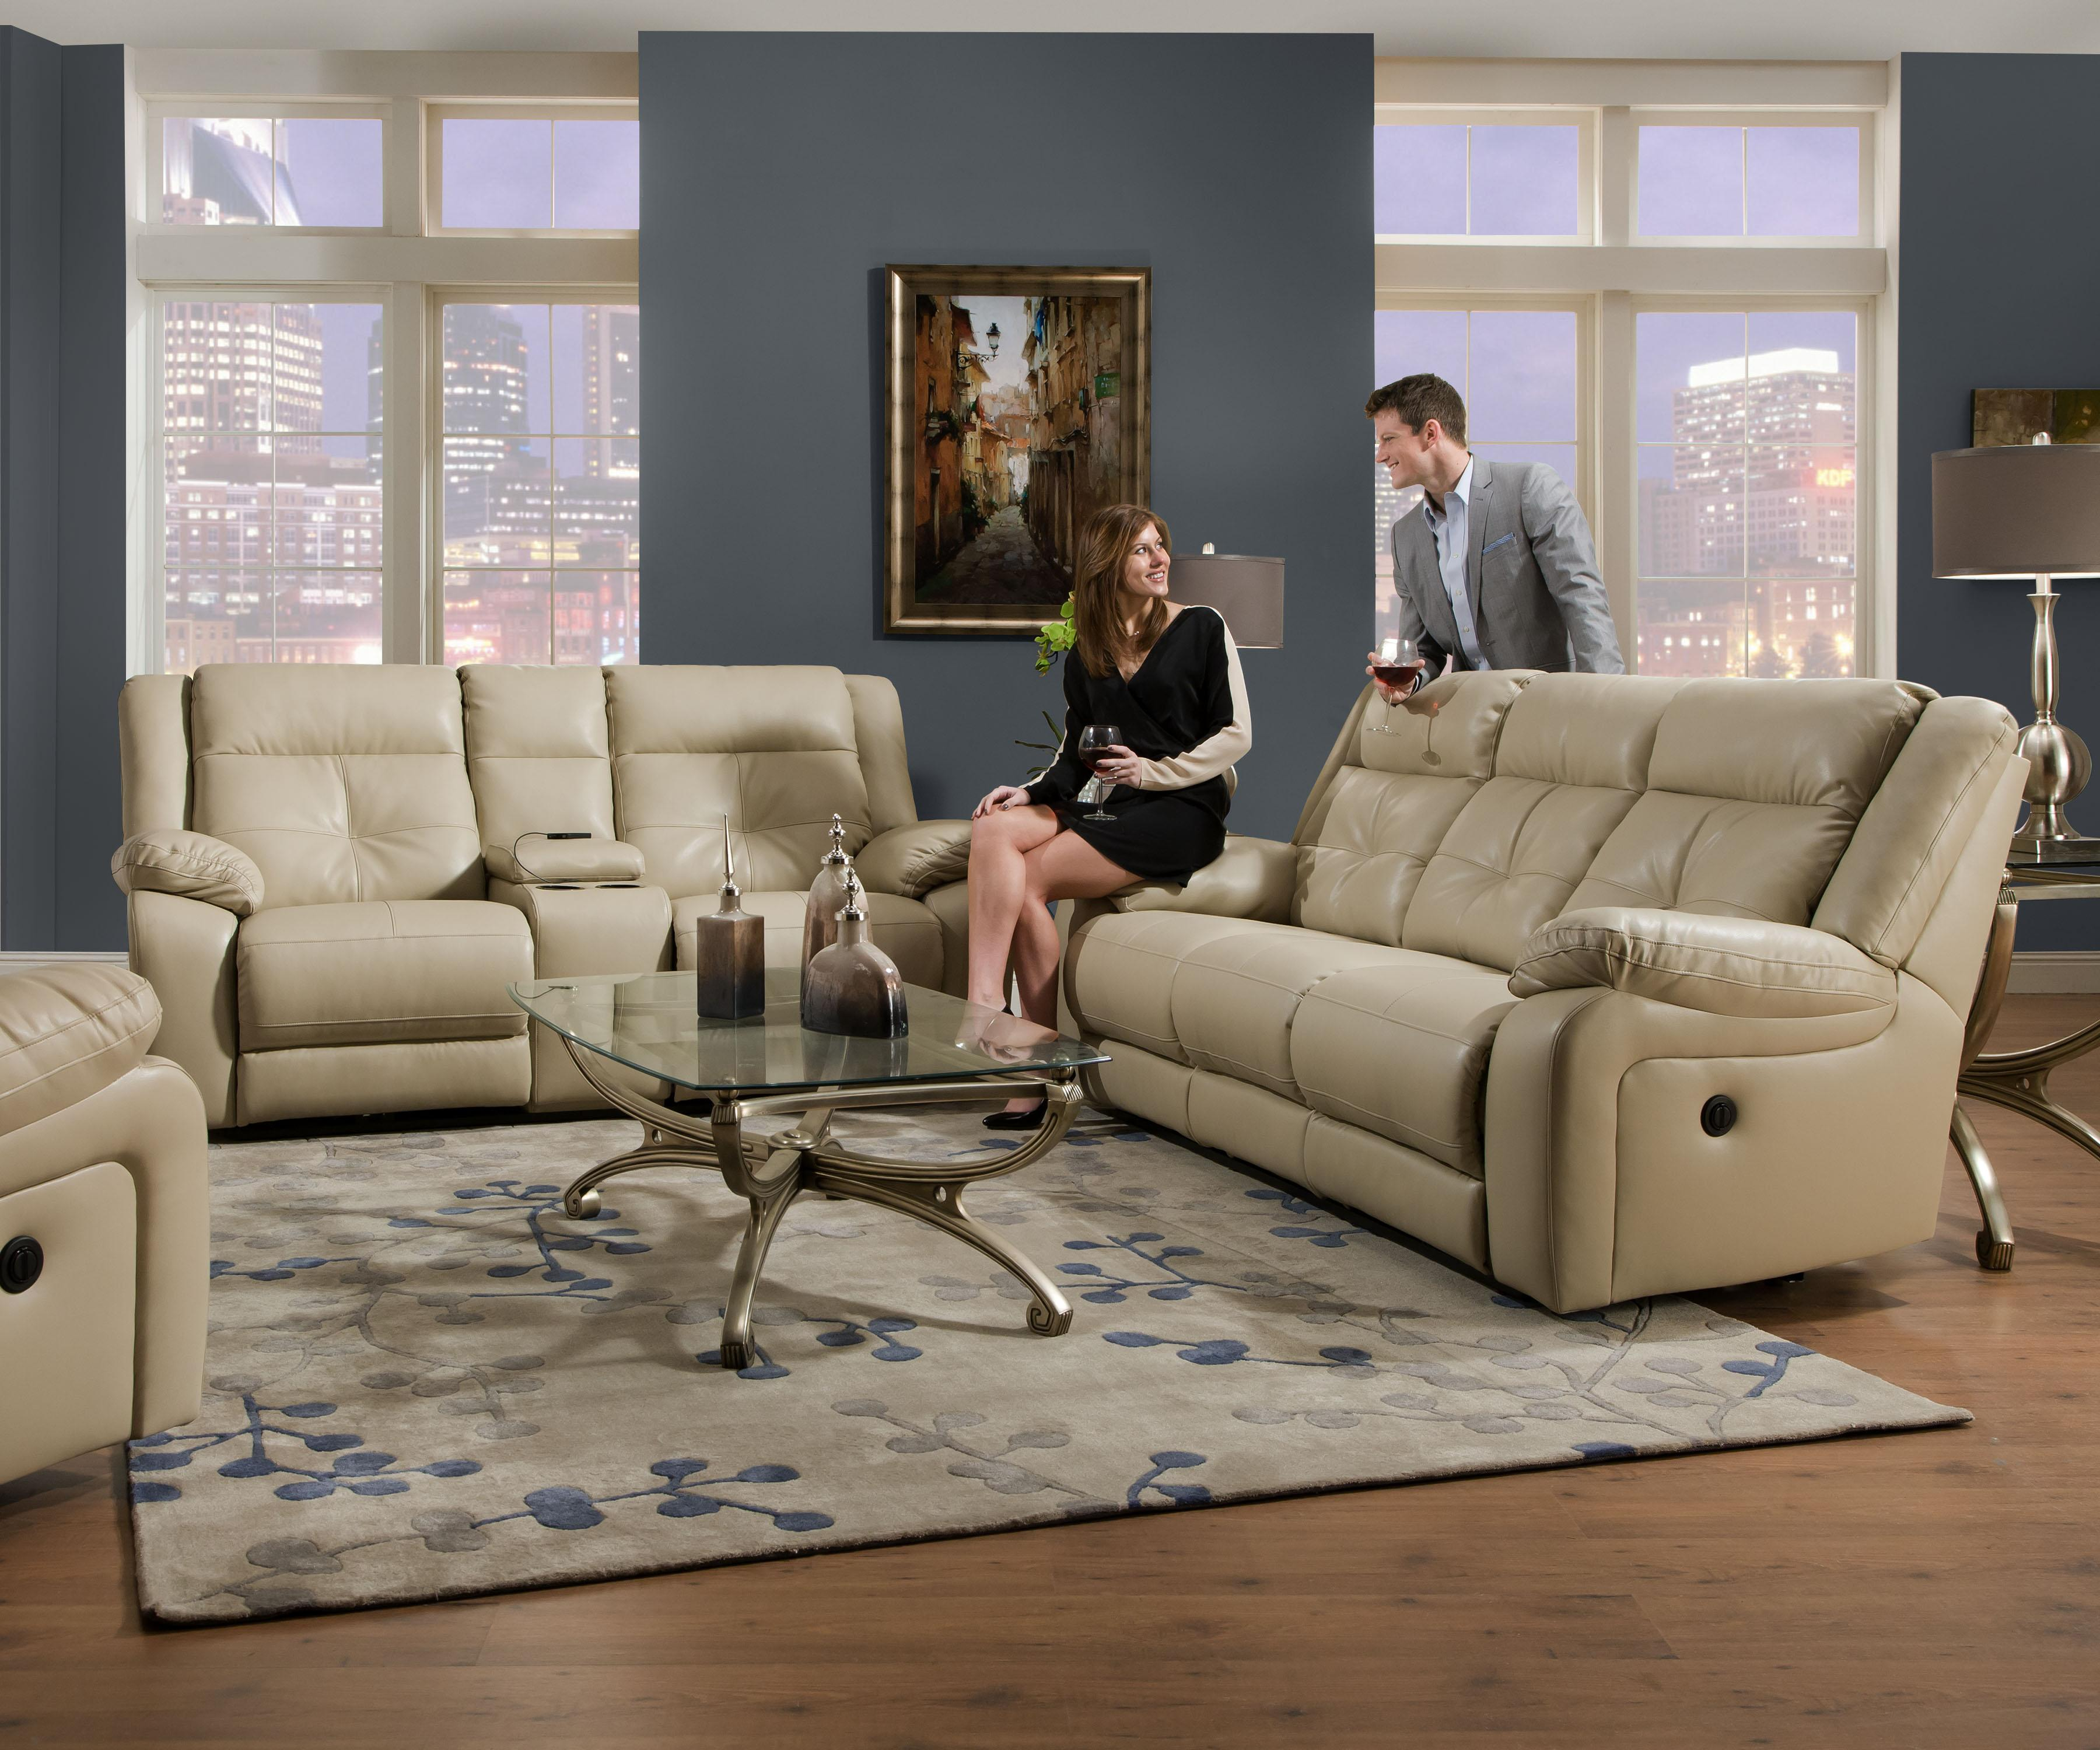 Simmons upholstery 50590 reclining living room group for Living room furniture groups